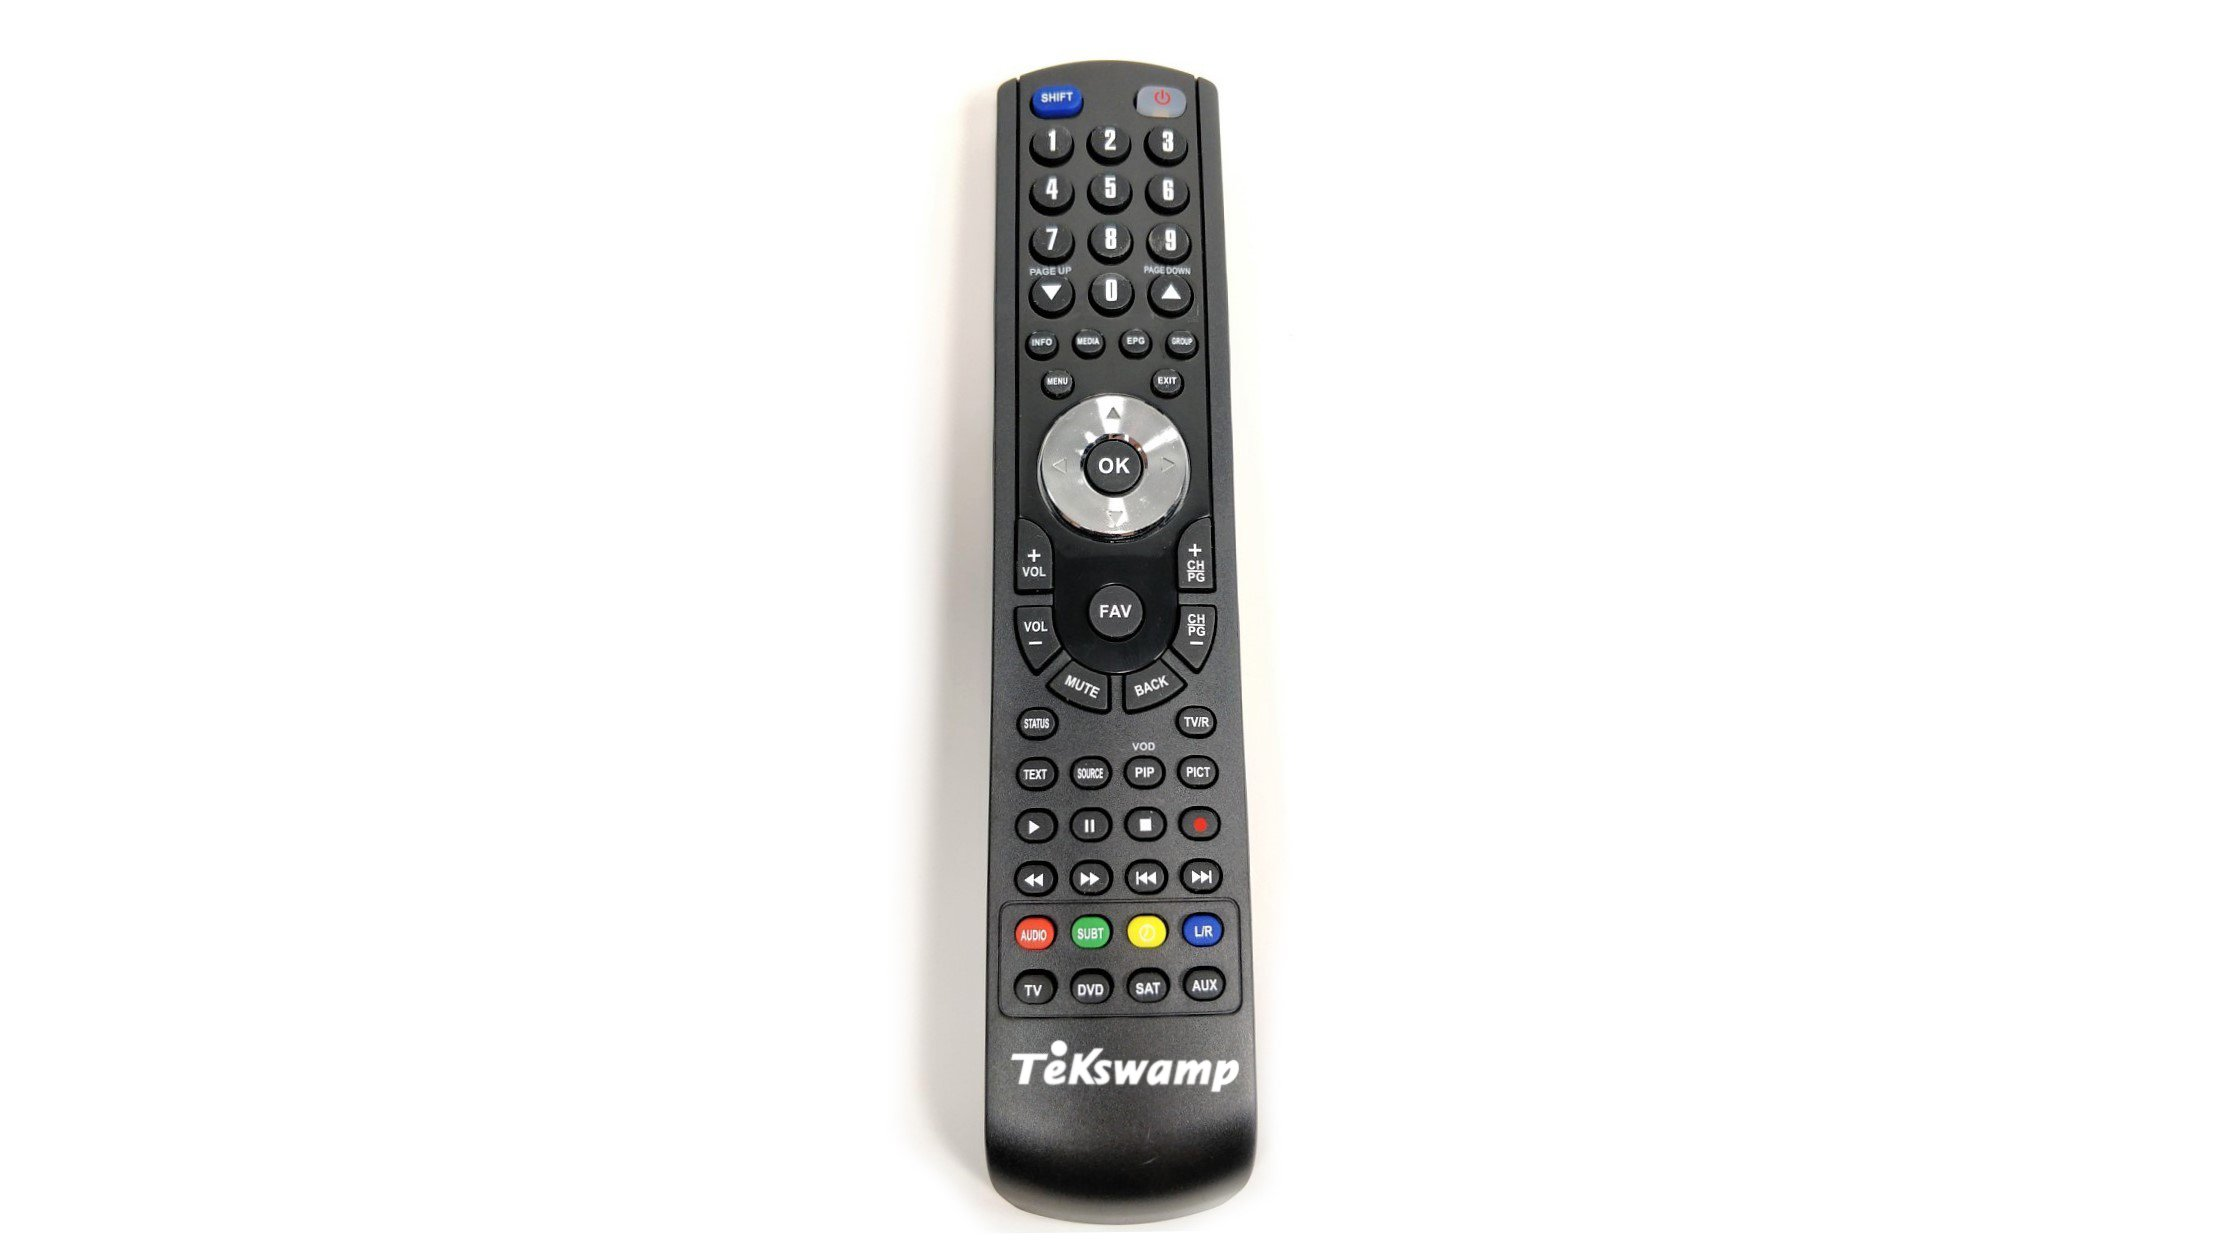 Tekswamp Replacement TV Remote Control for Sony RM-YD010 by Tekswamp